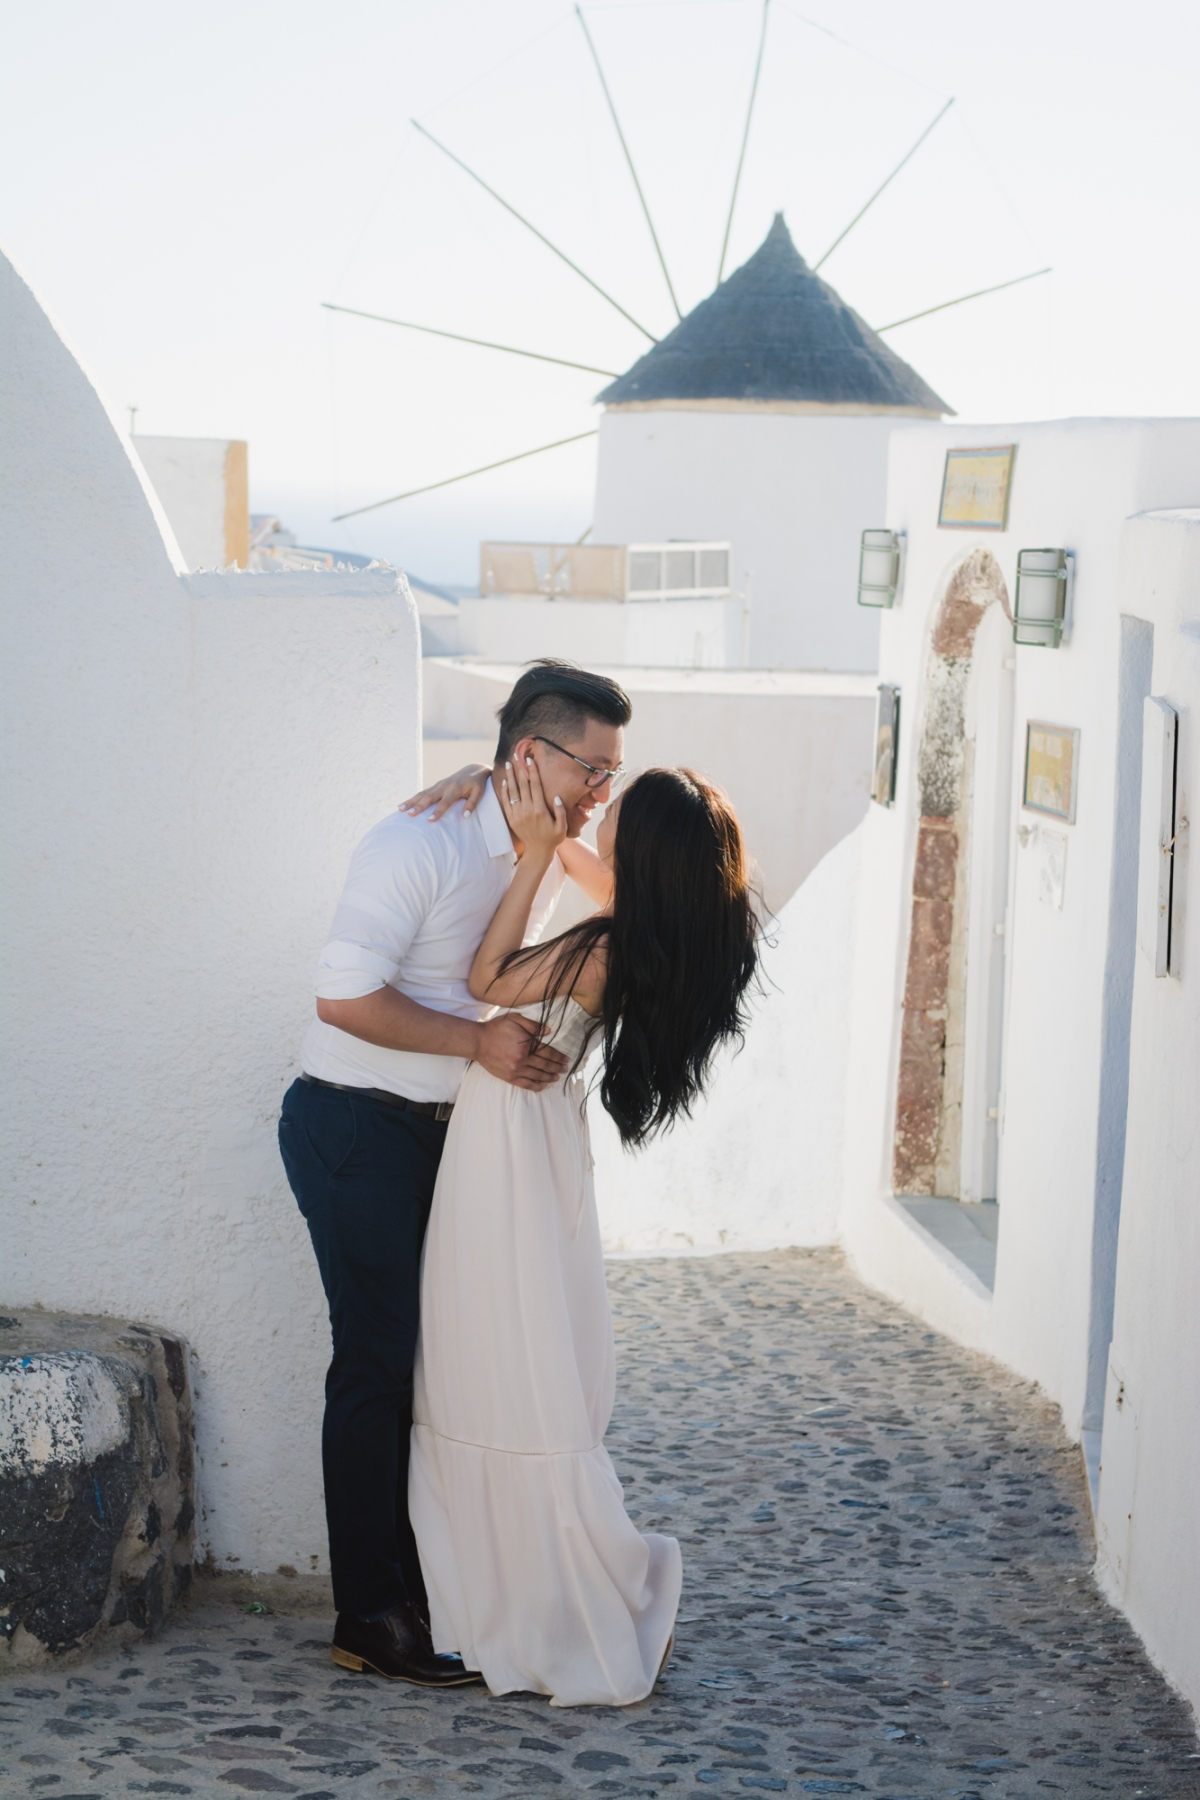 santorini-proposal-photo-session-love-story-fine-art-photographer-008